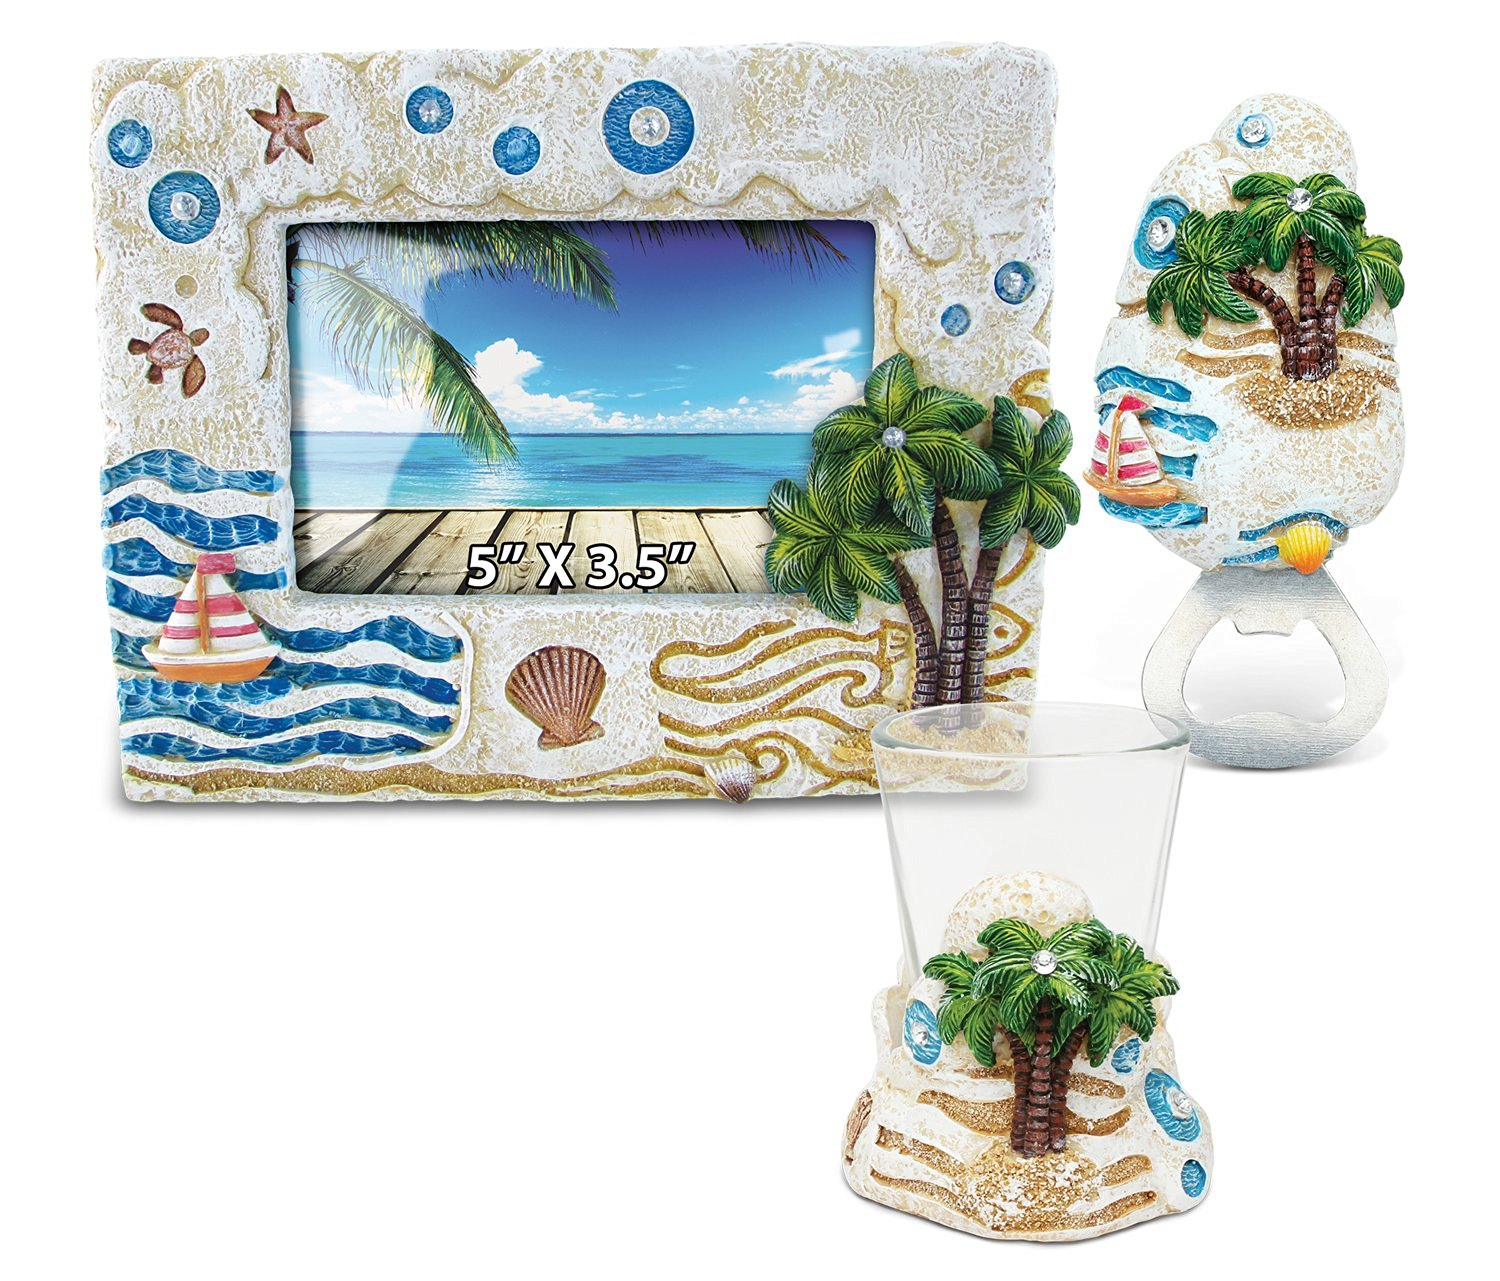 Puzzled Palm Tree Resin Stone Finish Collection including Picture/Photo Frame, Magnet Bottle Opener and Shot Glass - Picture Size 5 by 3 - Unique Elegant Gift and Souvenir